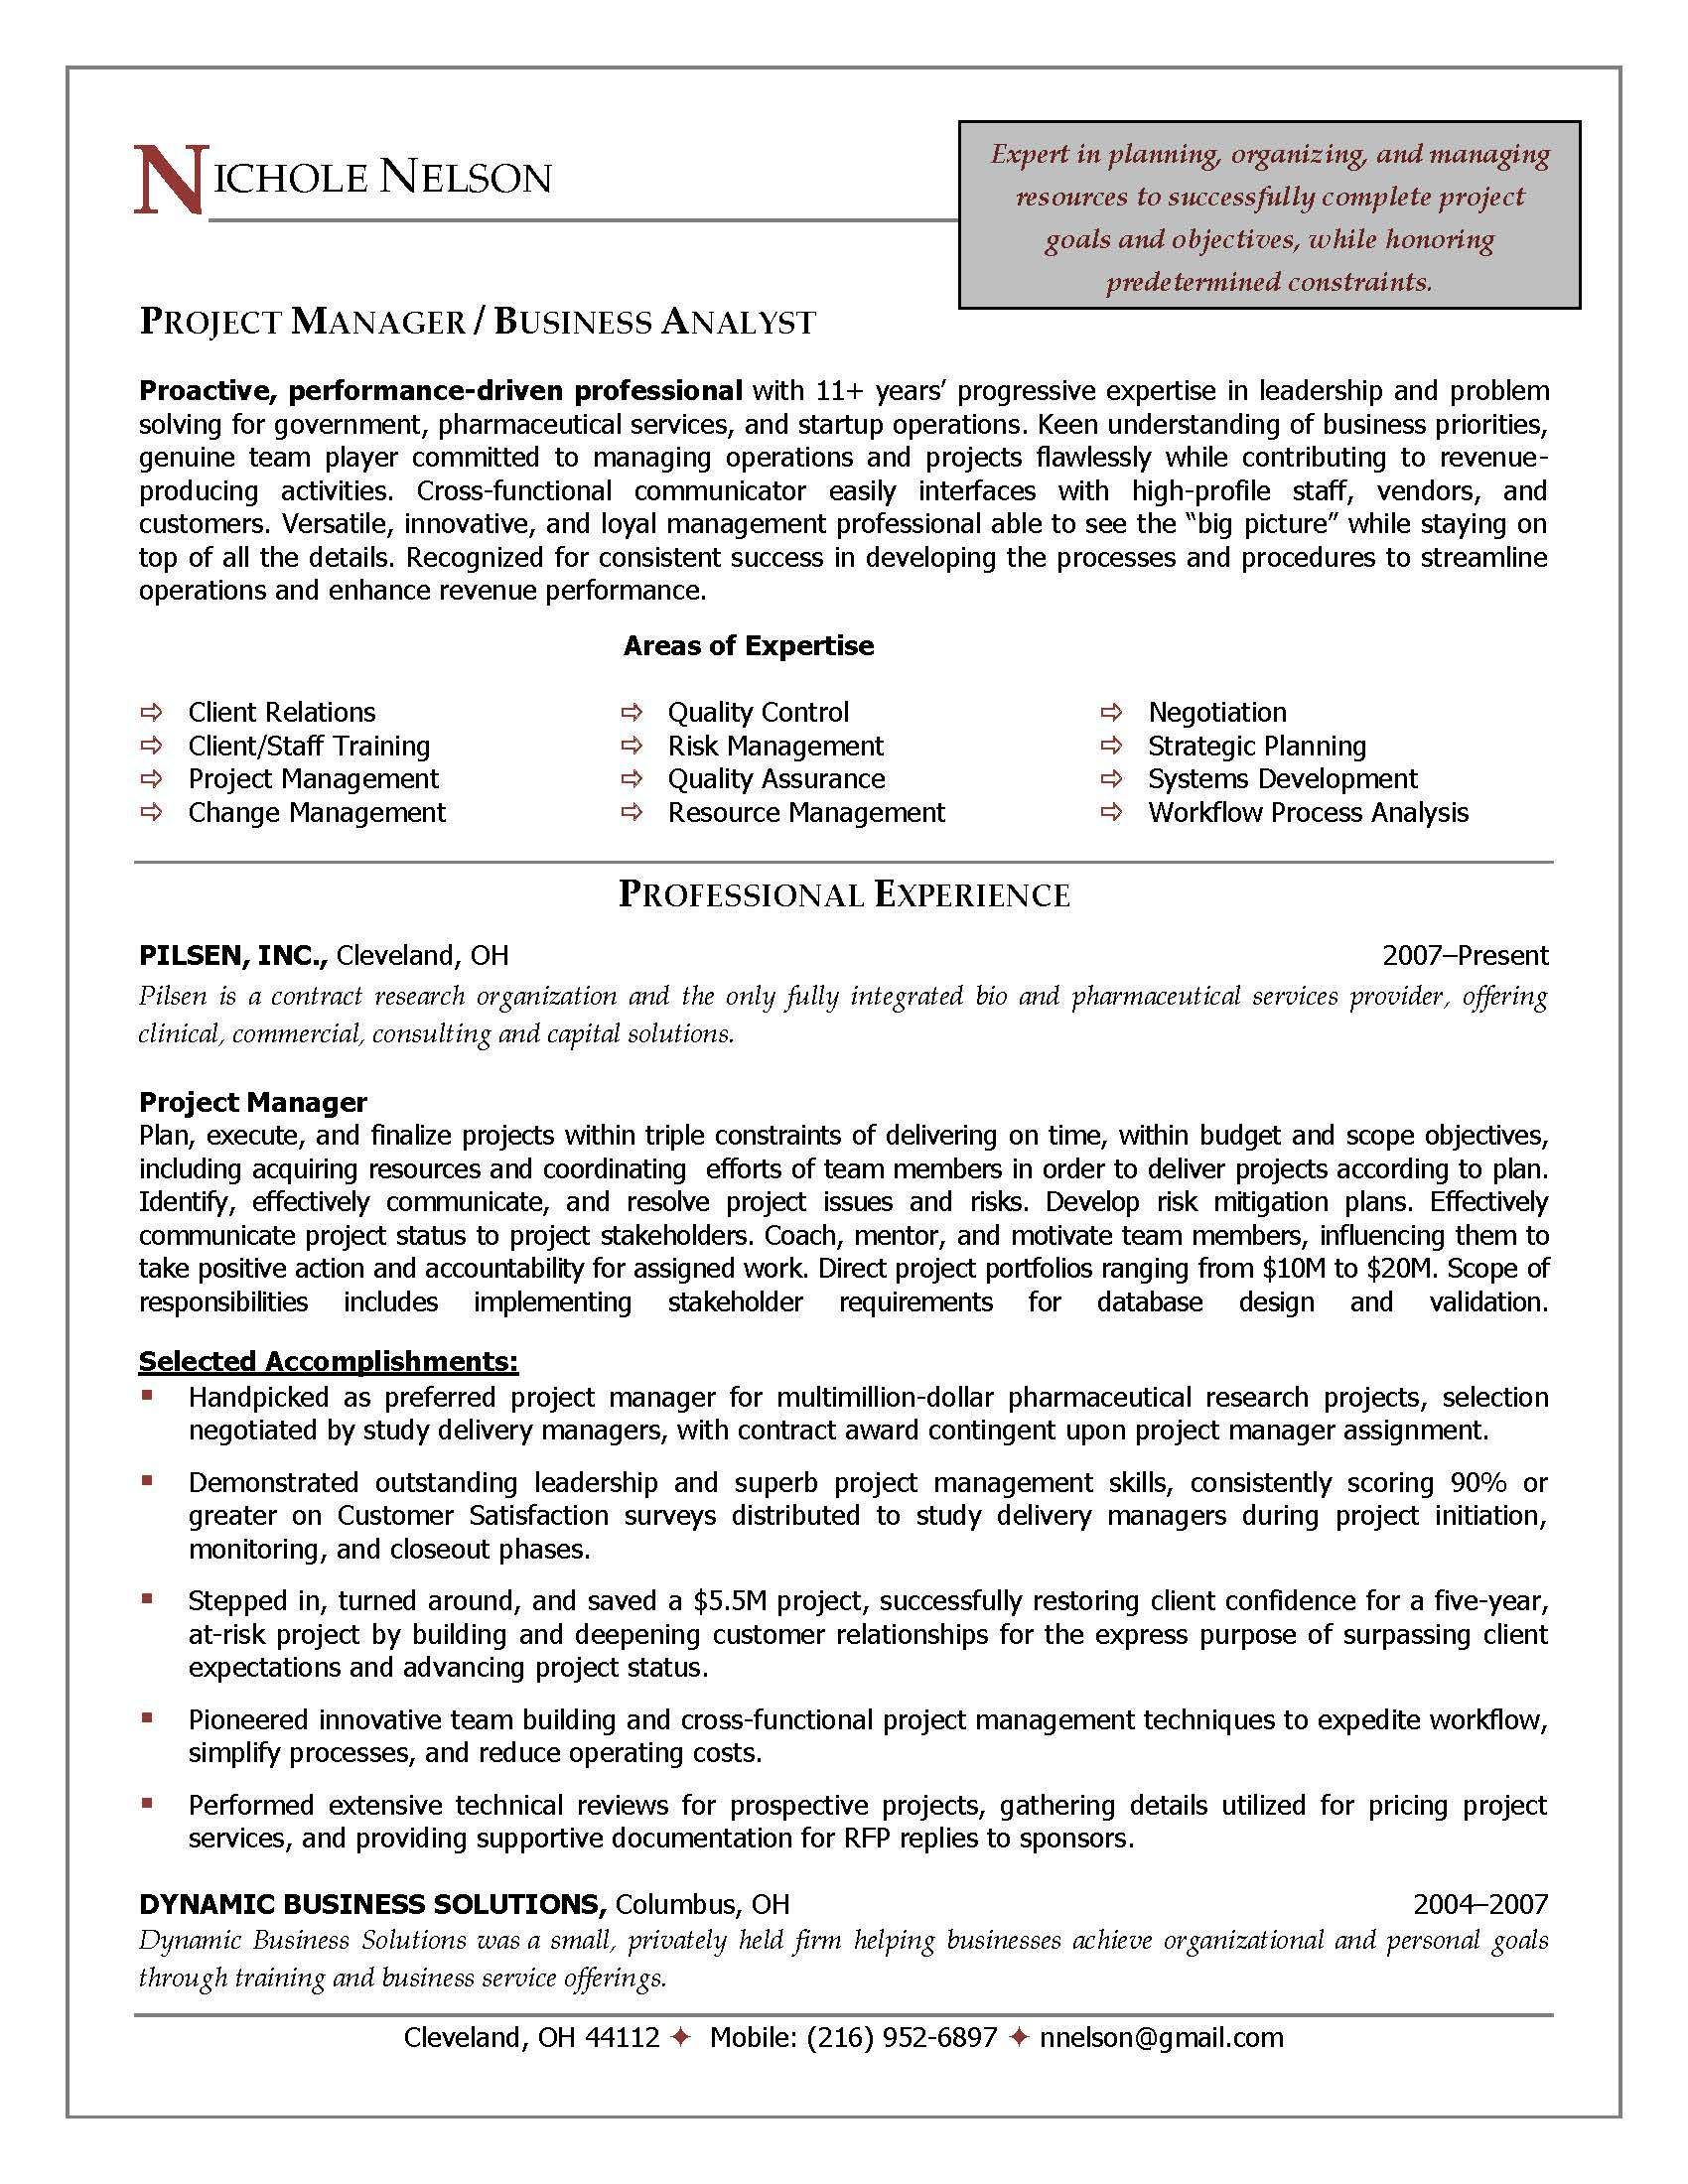 Project Management Skills Resume Project Manager Resume Sample Provided Elite Writing Program Free